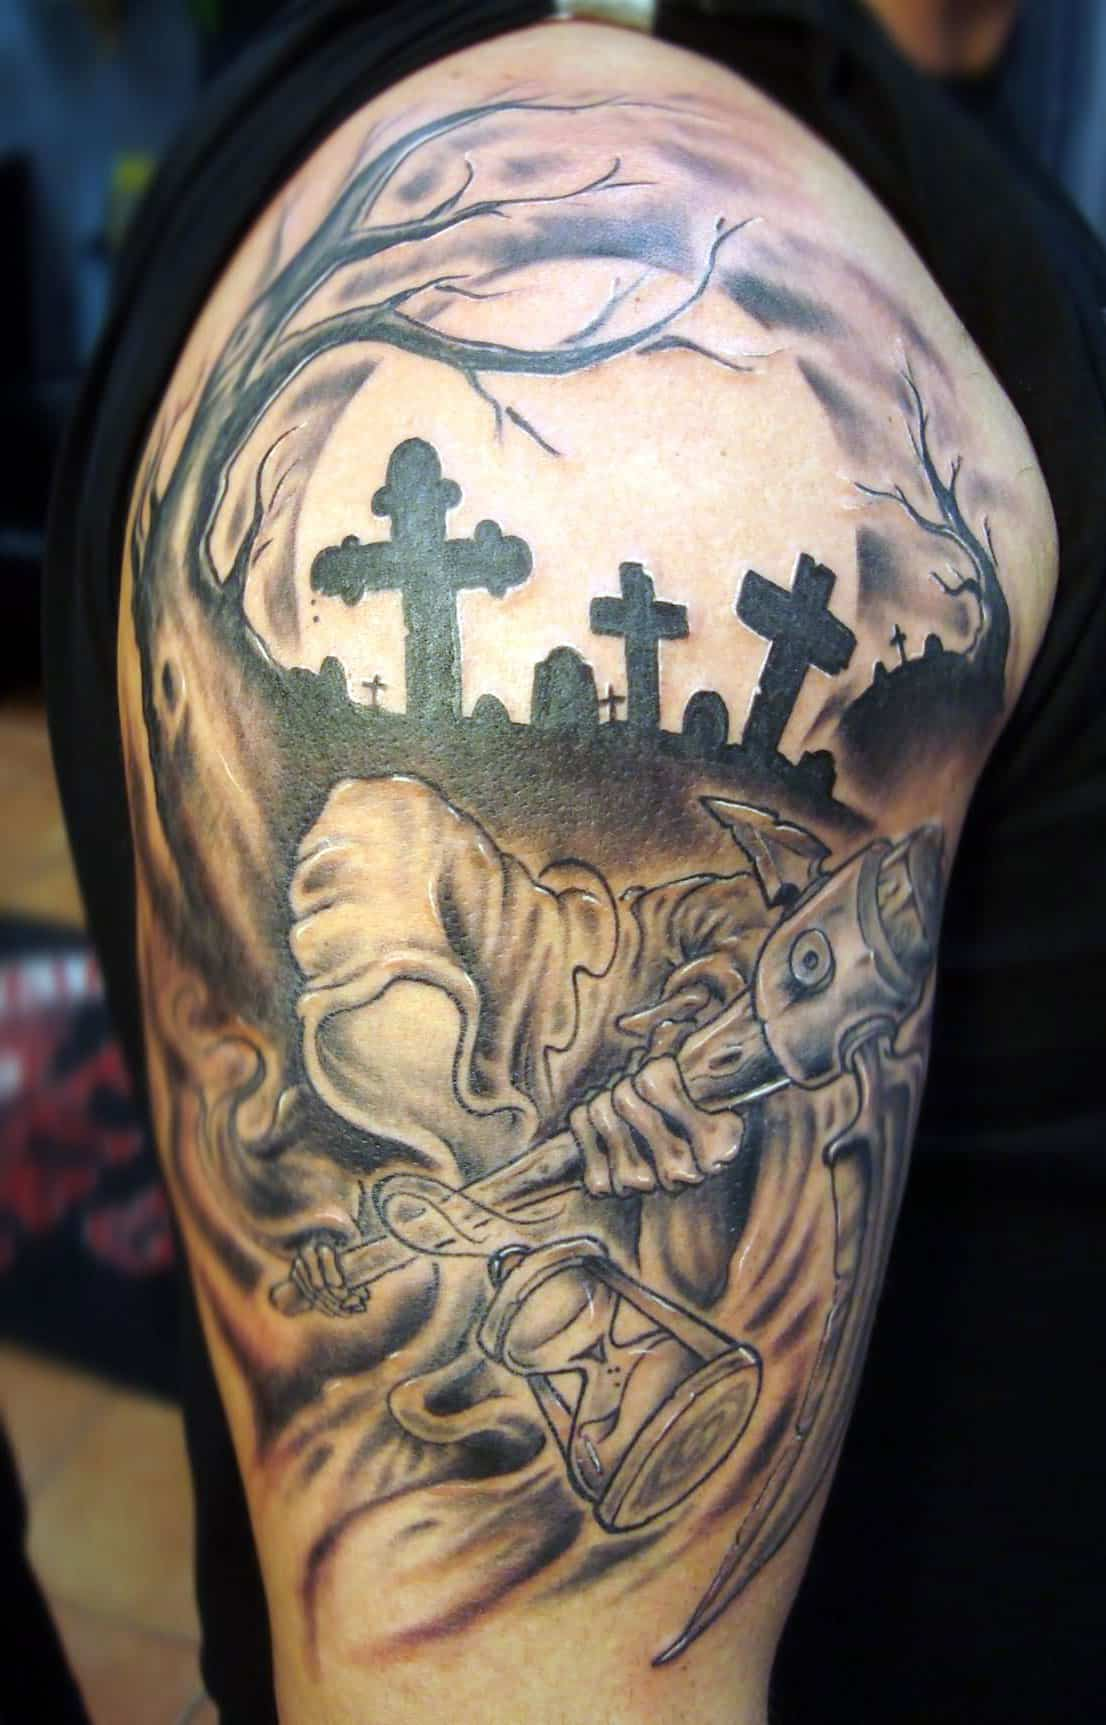 105 cool grim reaper tattoos designs ideas and meanings